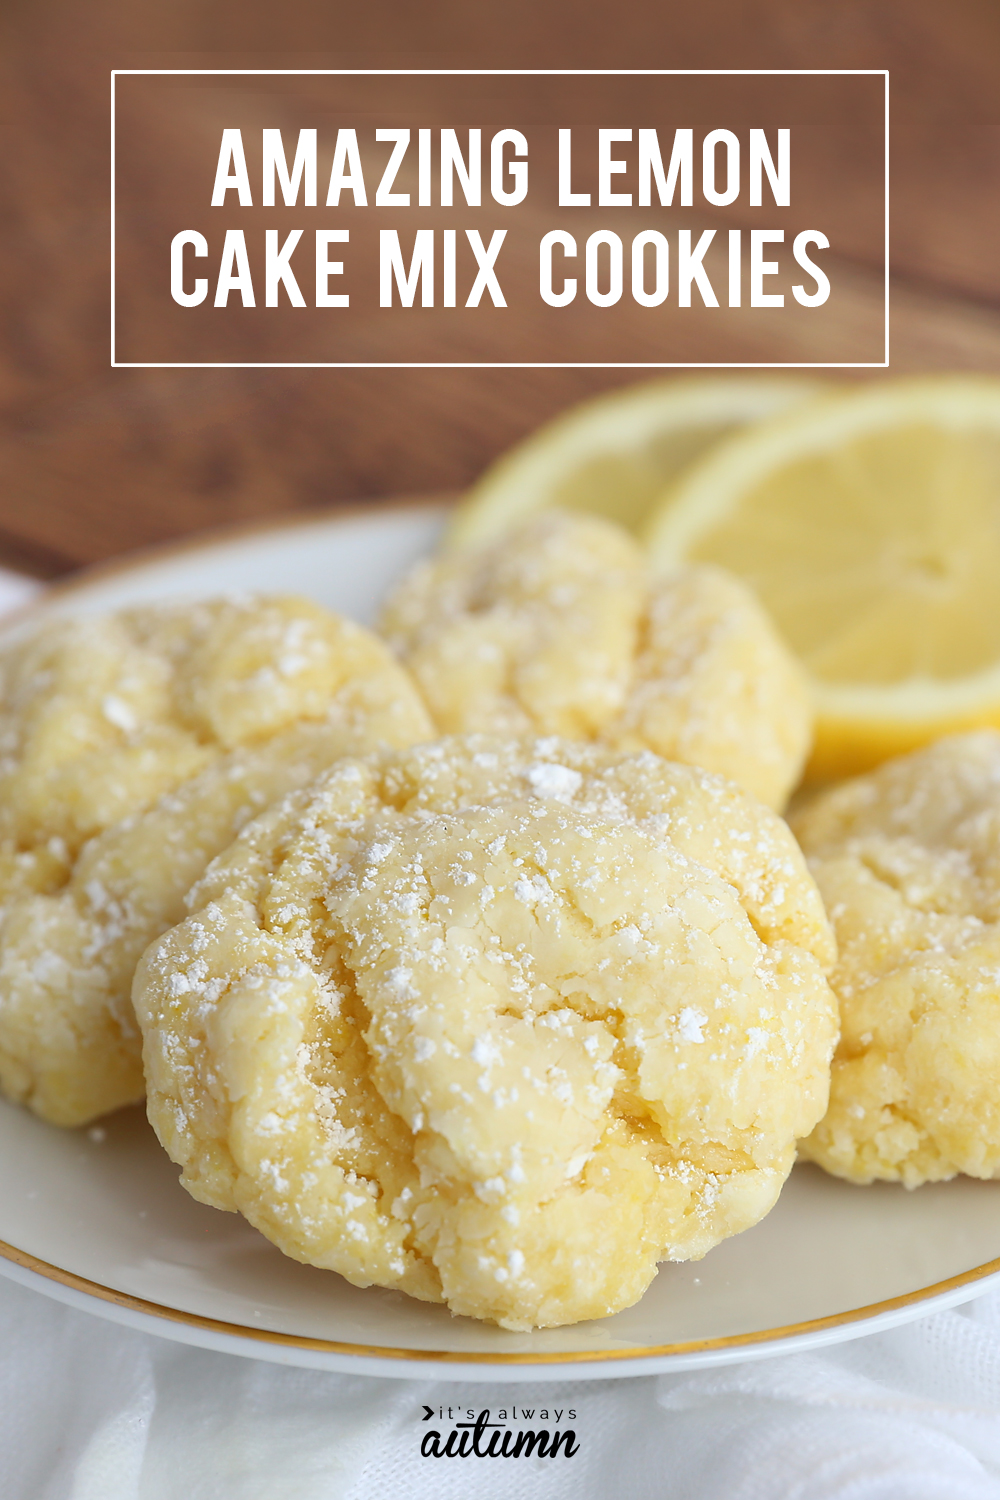 These lemon cookies taste like heaven! They're super soft and super easy to make with just 5 ingredients. Lemon cake mix cookies.